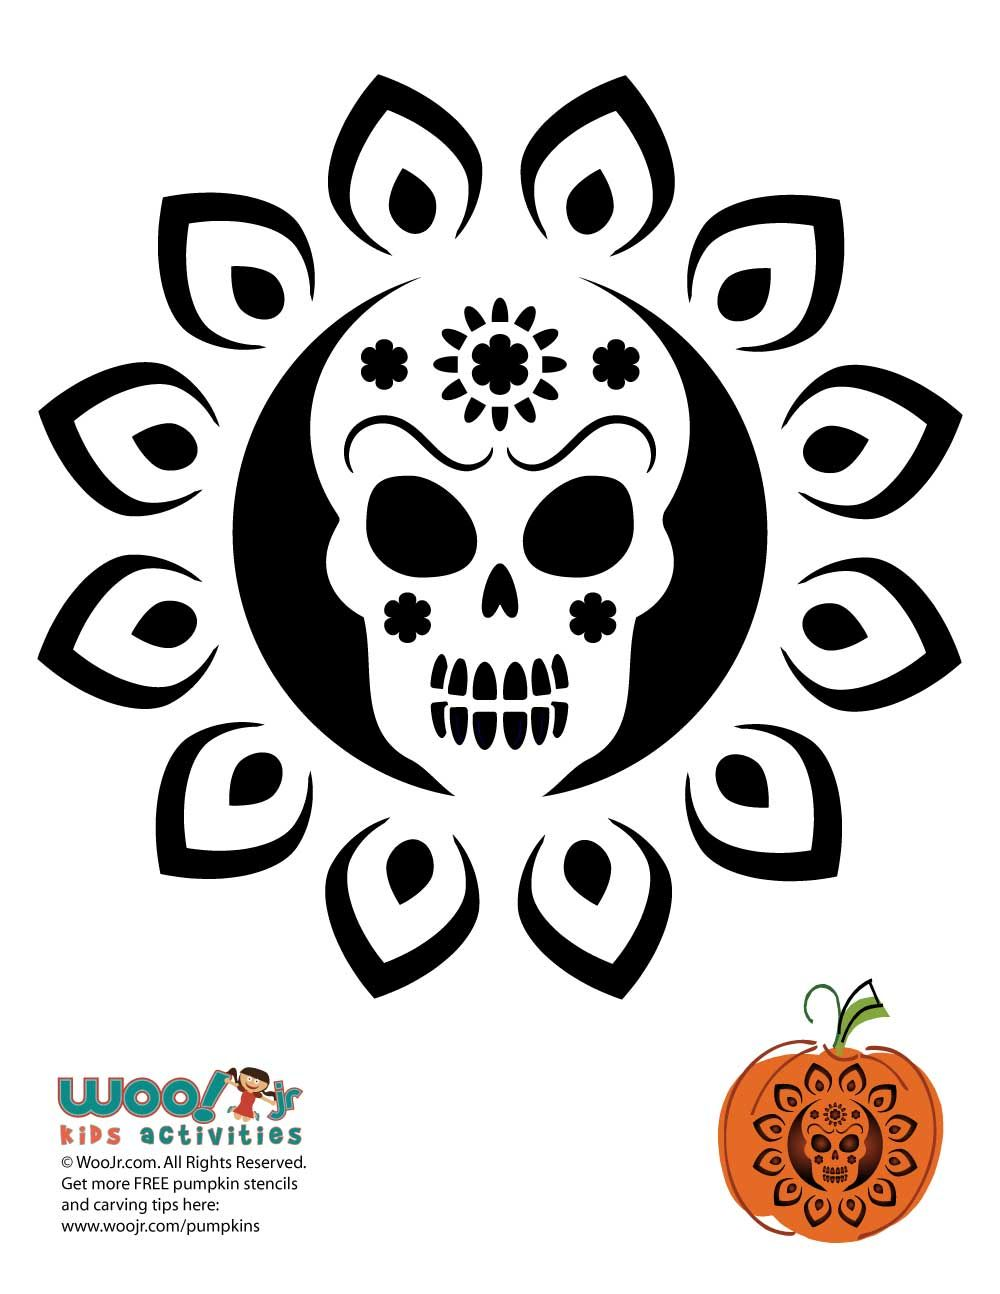 Day Of The Dead Pumpkin Carving Stencils Woo Jr Kids Activities Pumpkin Carvings Stencils Pumpkin Carving Halloween Pumpkin Stencils